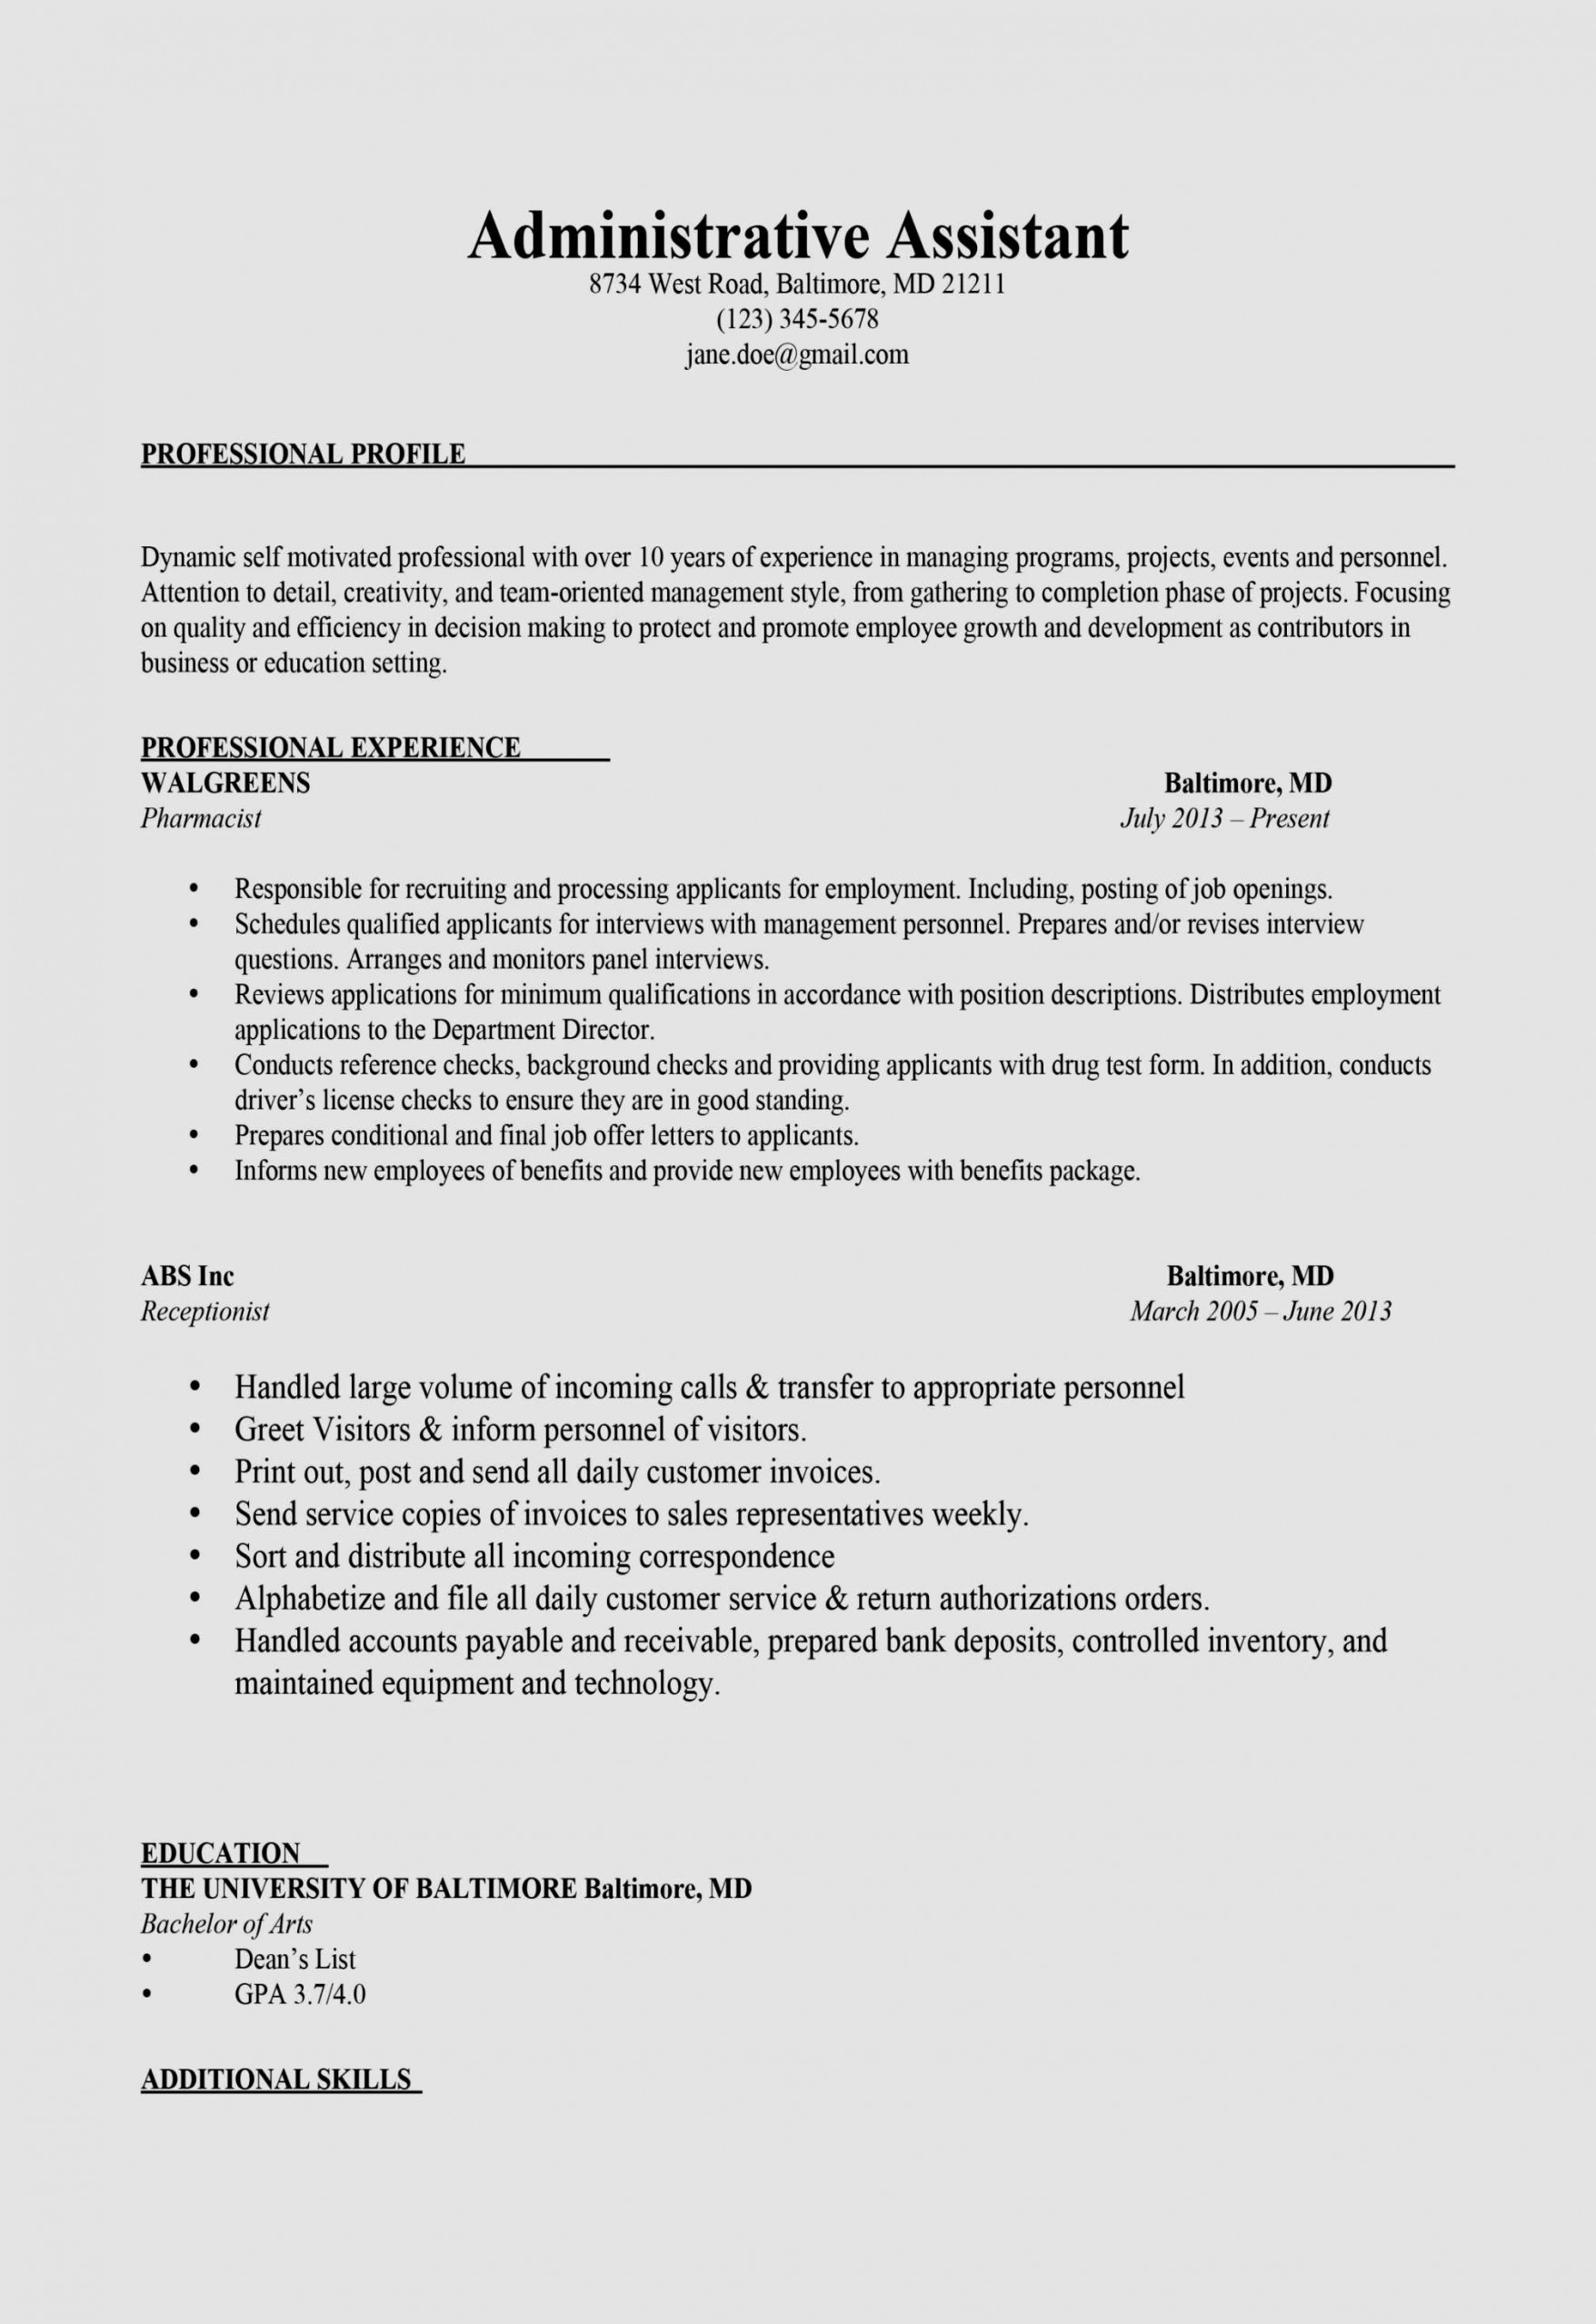 free detailed resume template builder example ken tool templates samples of cover letter Resume Ken Coleman Resume Tool